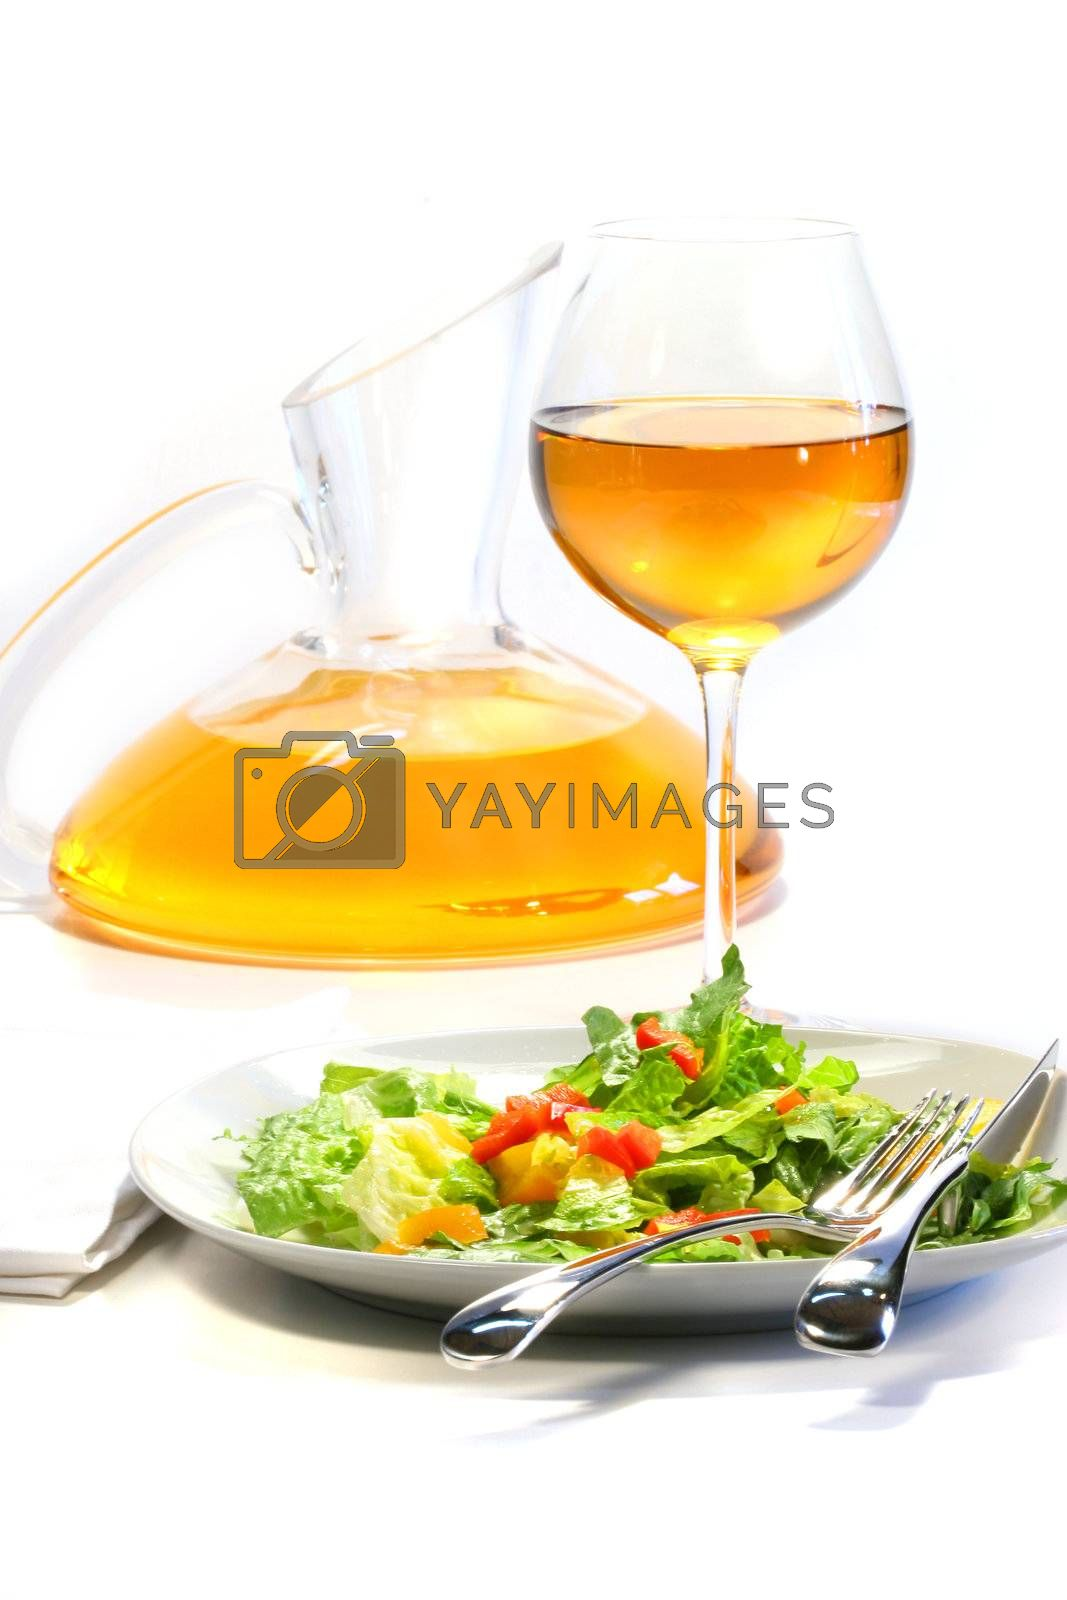 Plate of salad and wine glass on white background